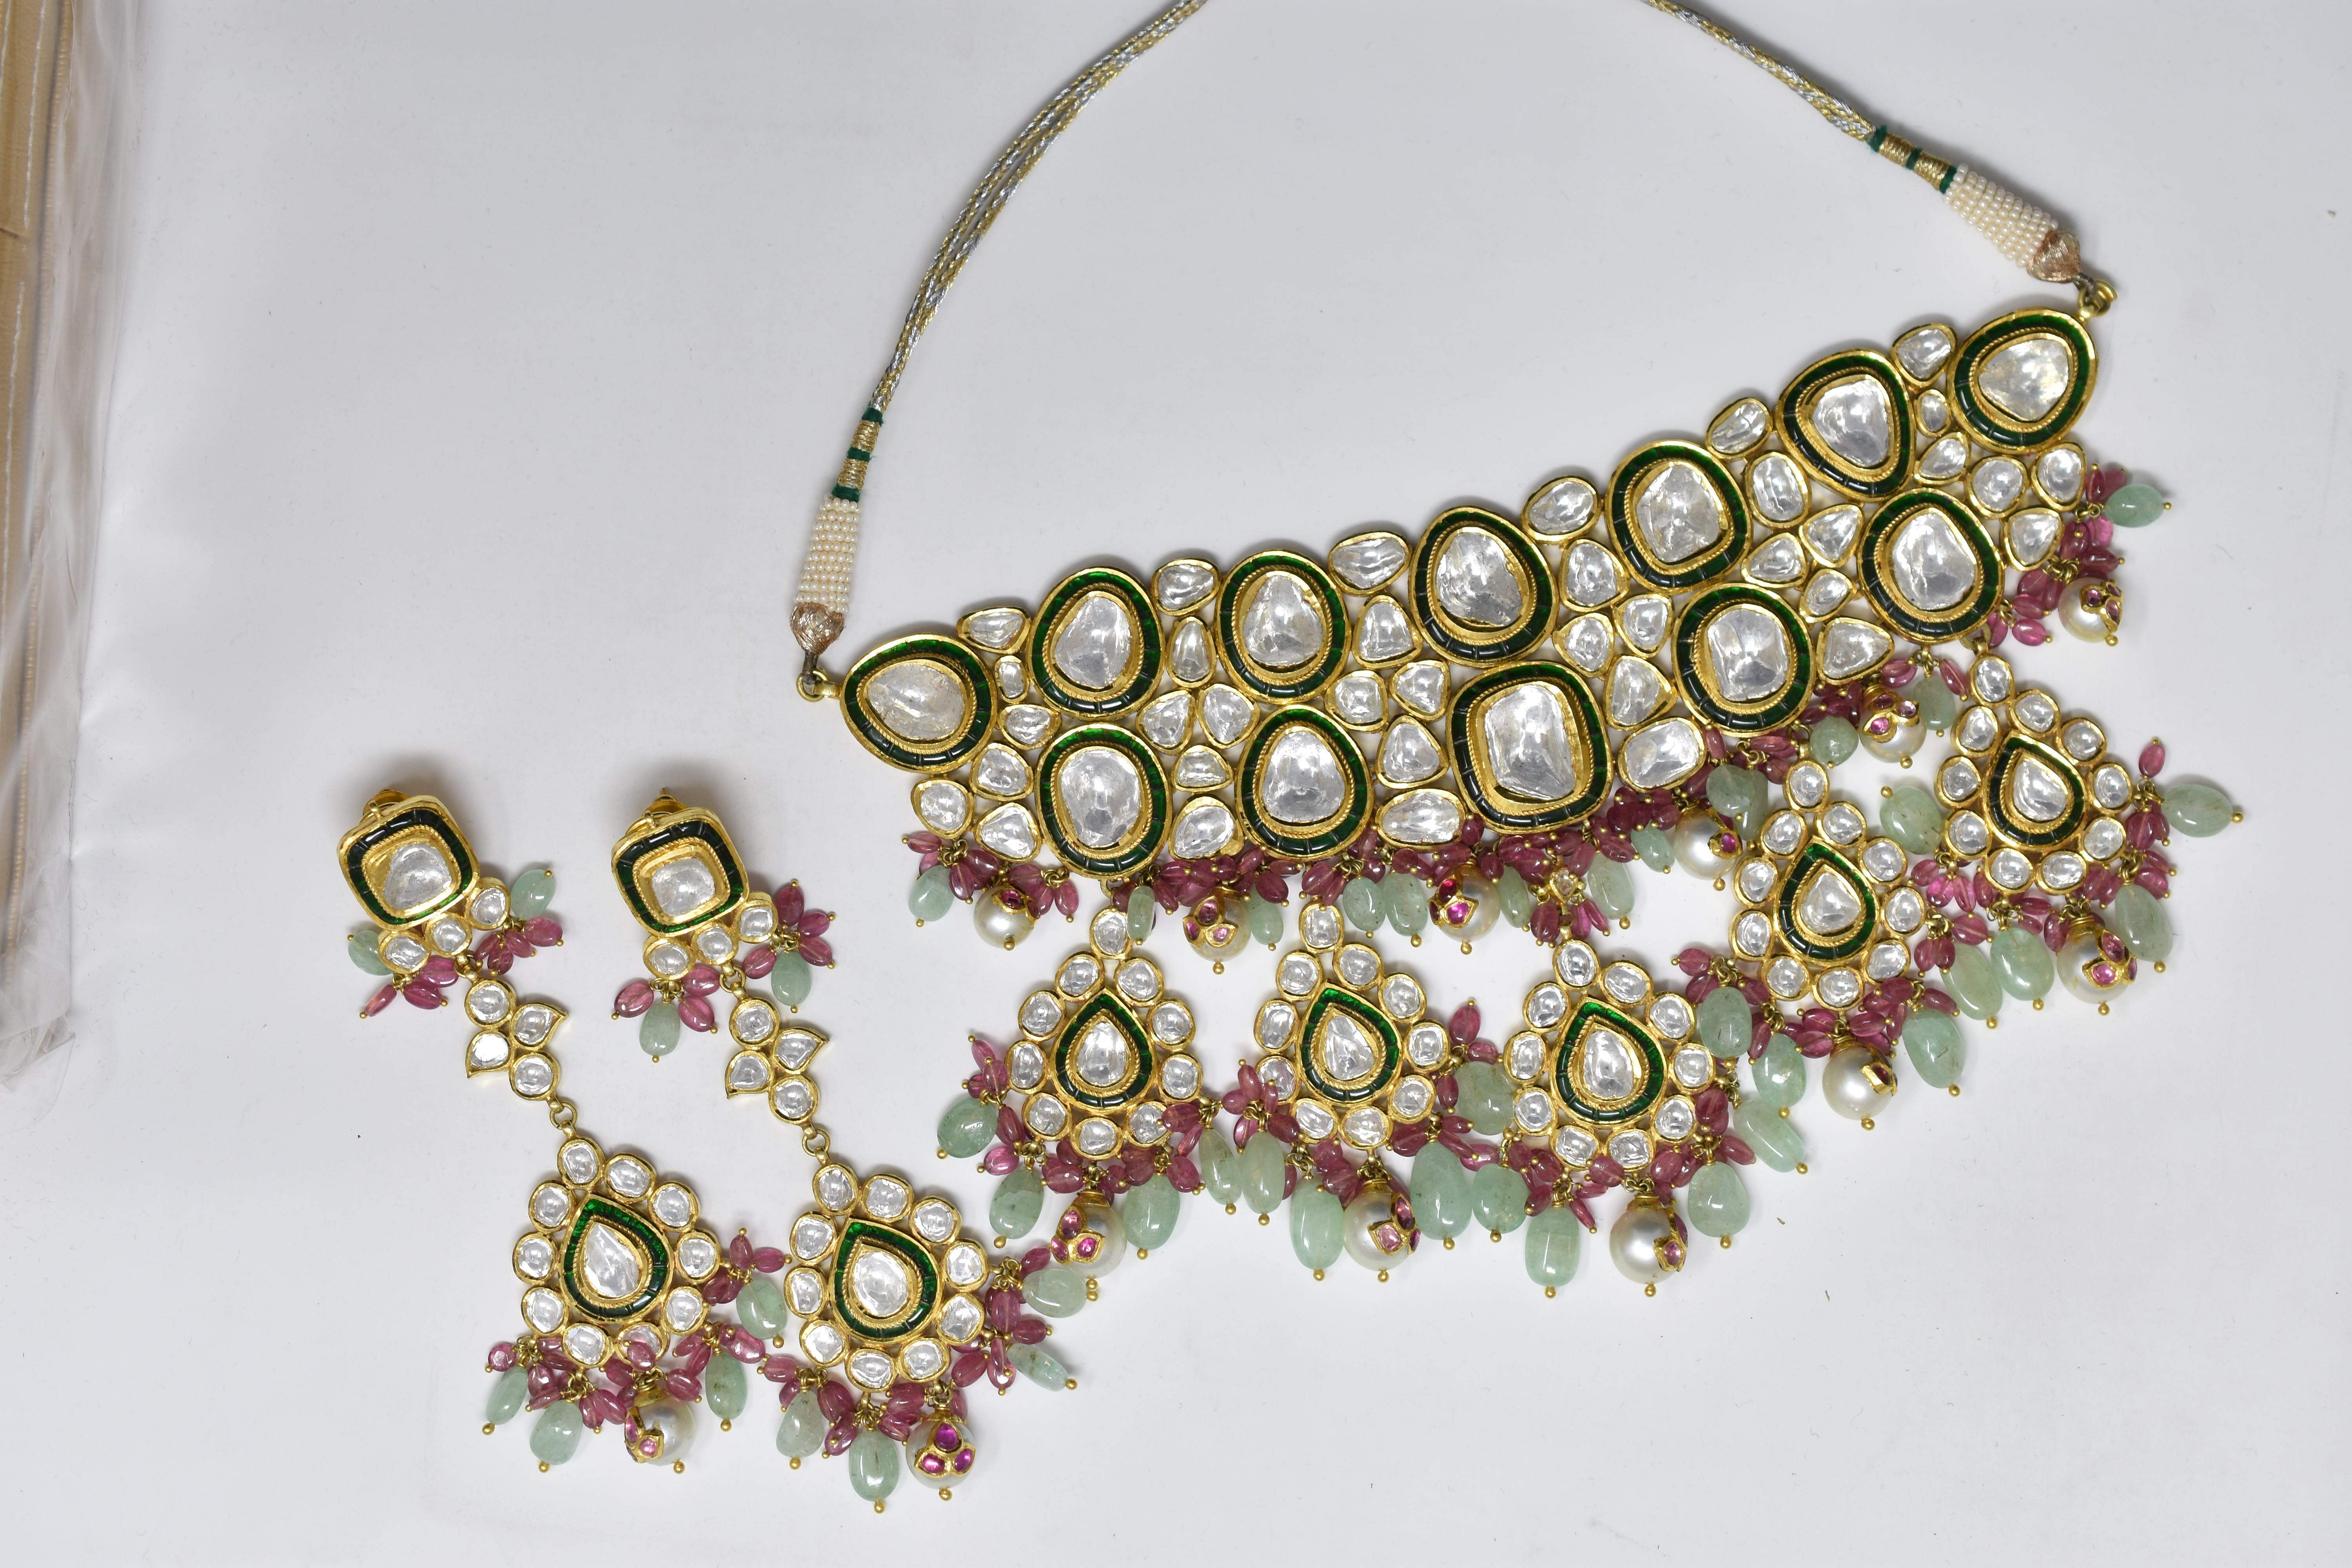 Jewellery from Rambhajos